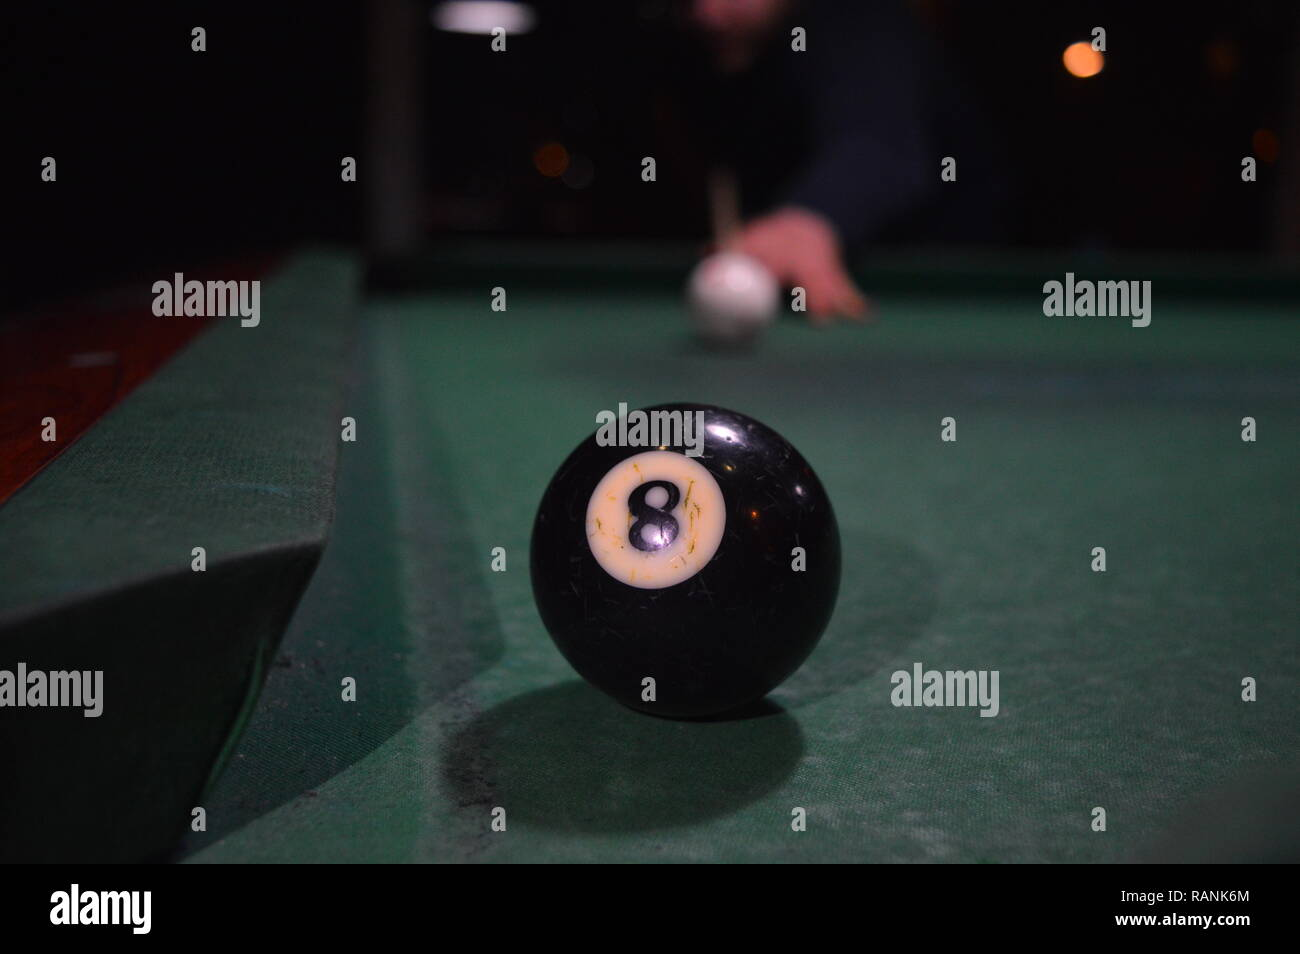 Game of pool, person playing pool and hitting balls - Stock Image